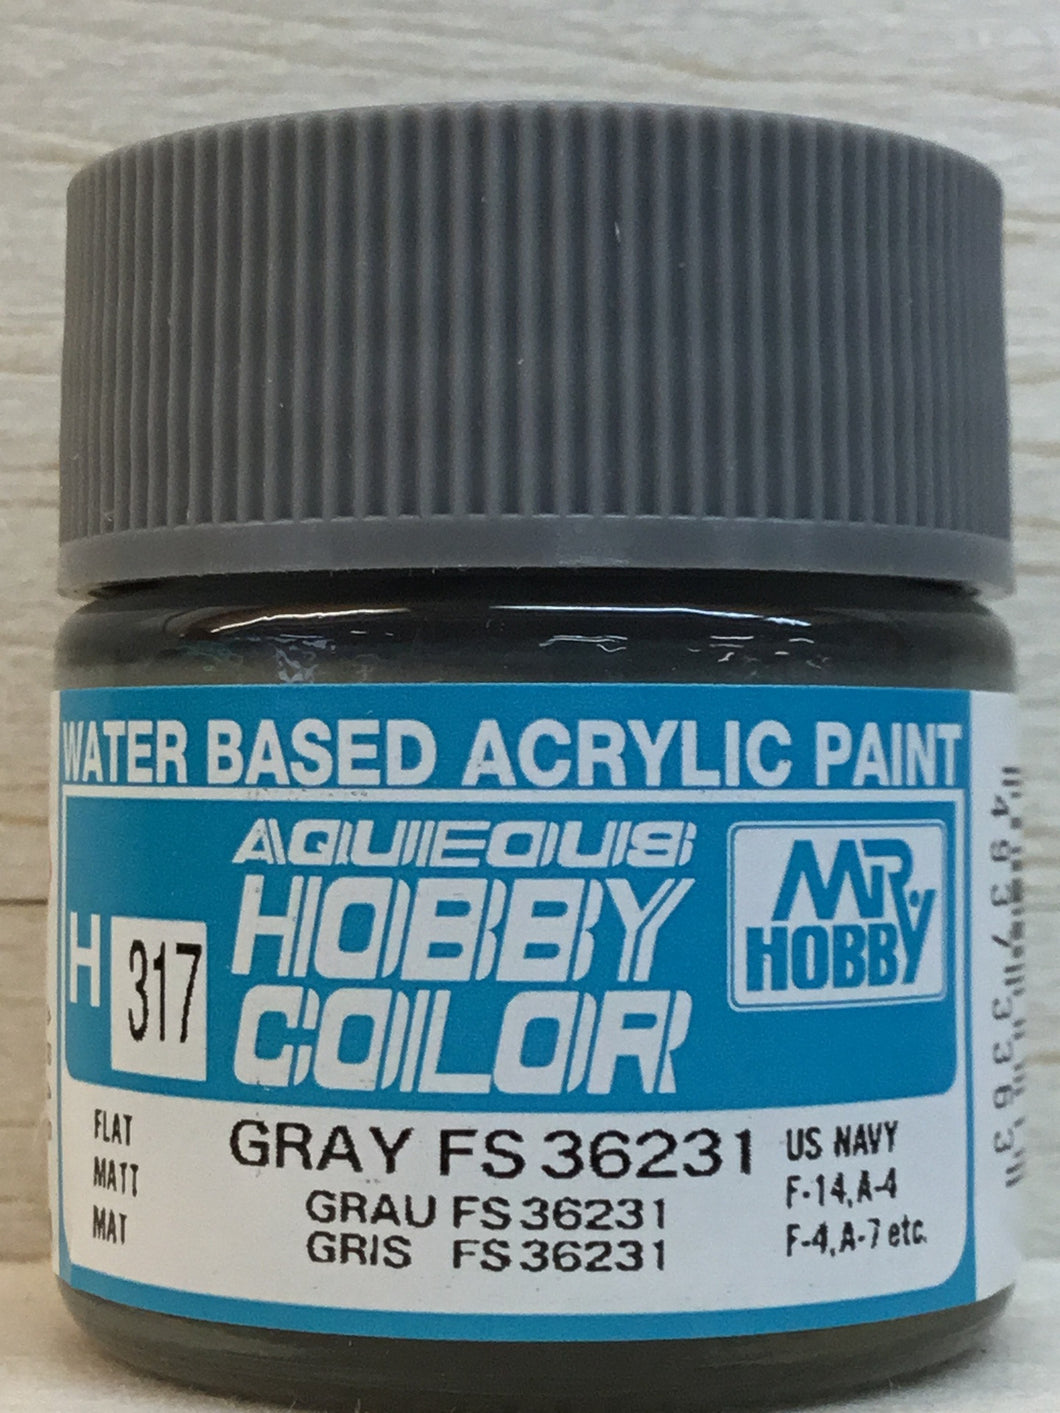 GUNZE MR HOBBY COLOR H317 FLAT GRAY FS36231